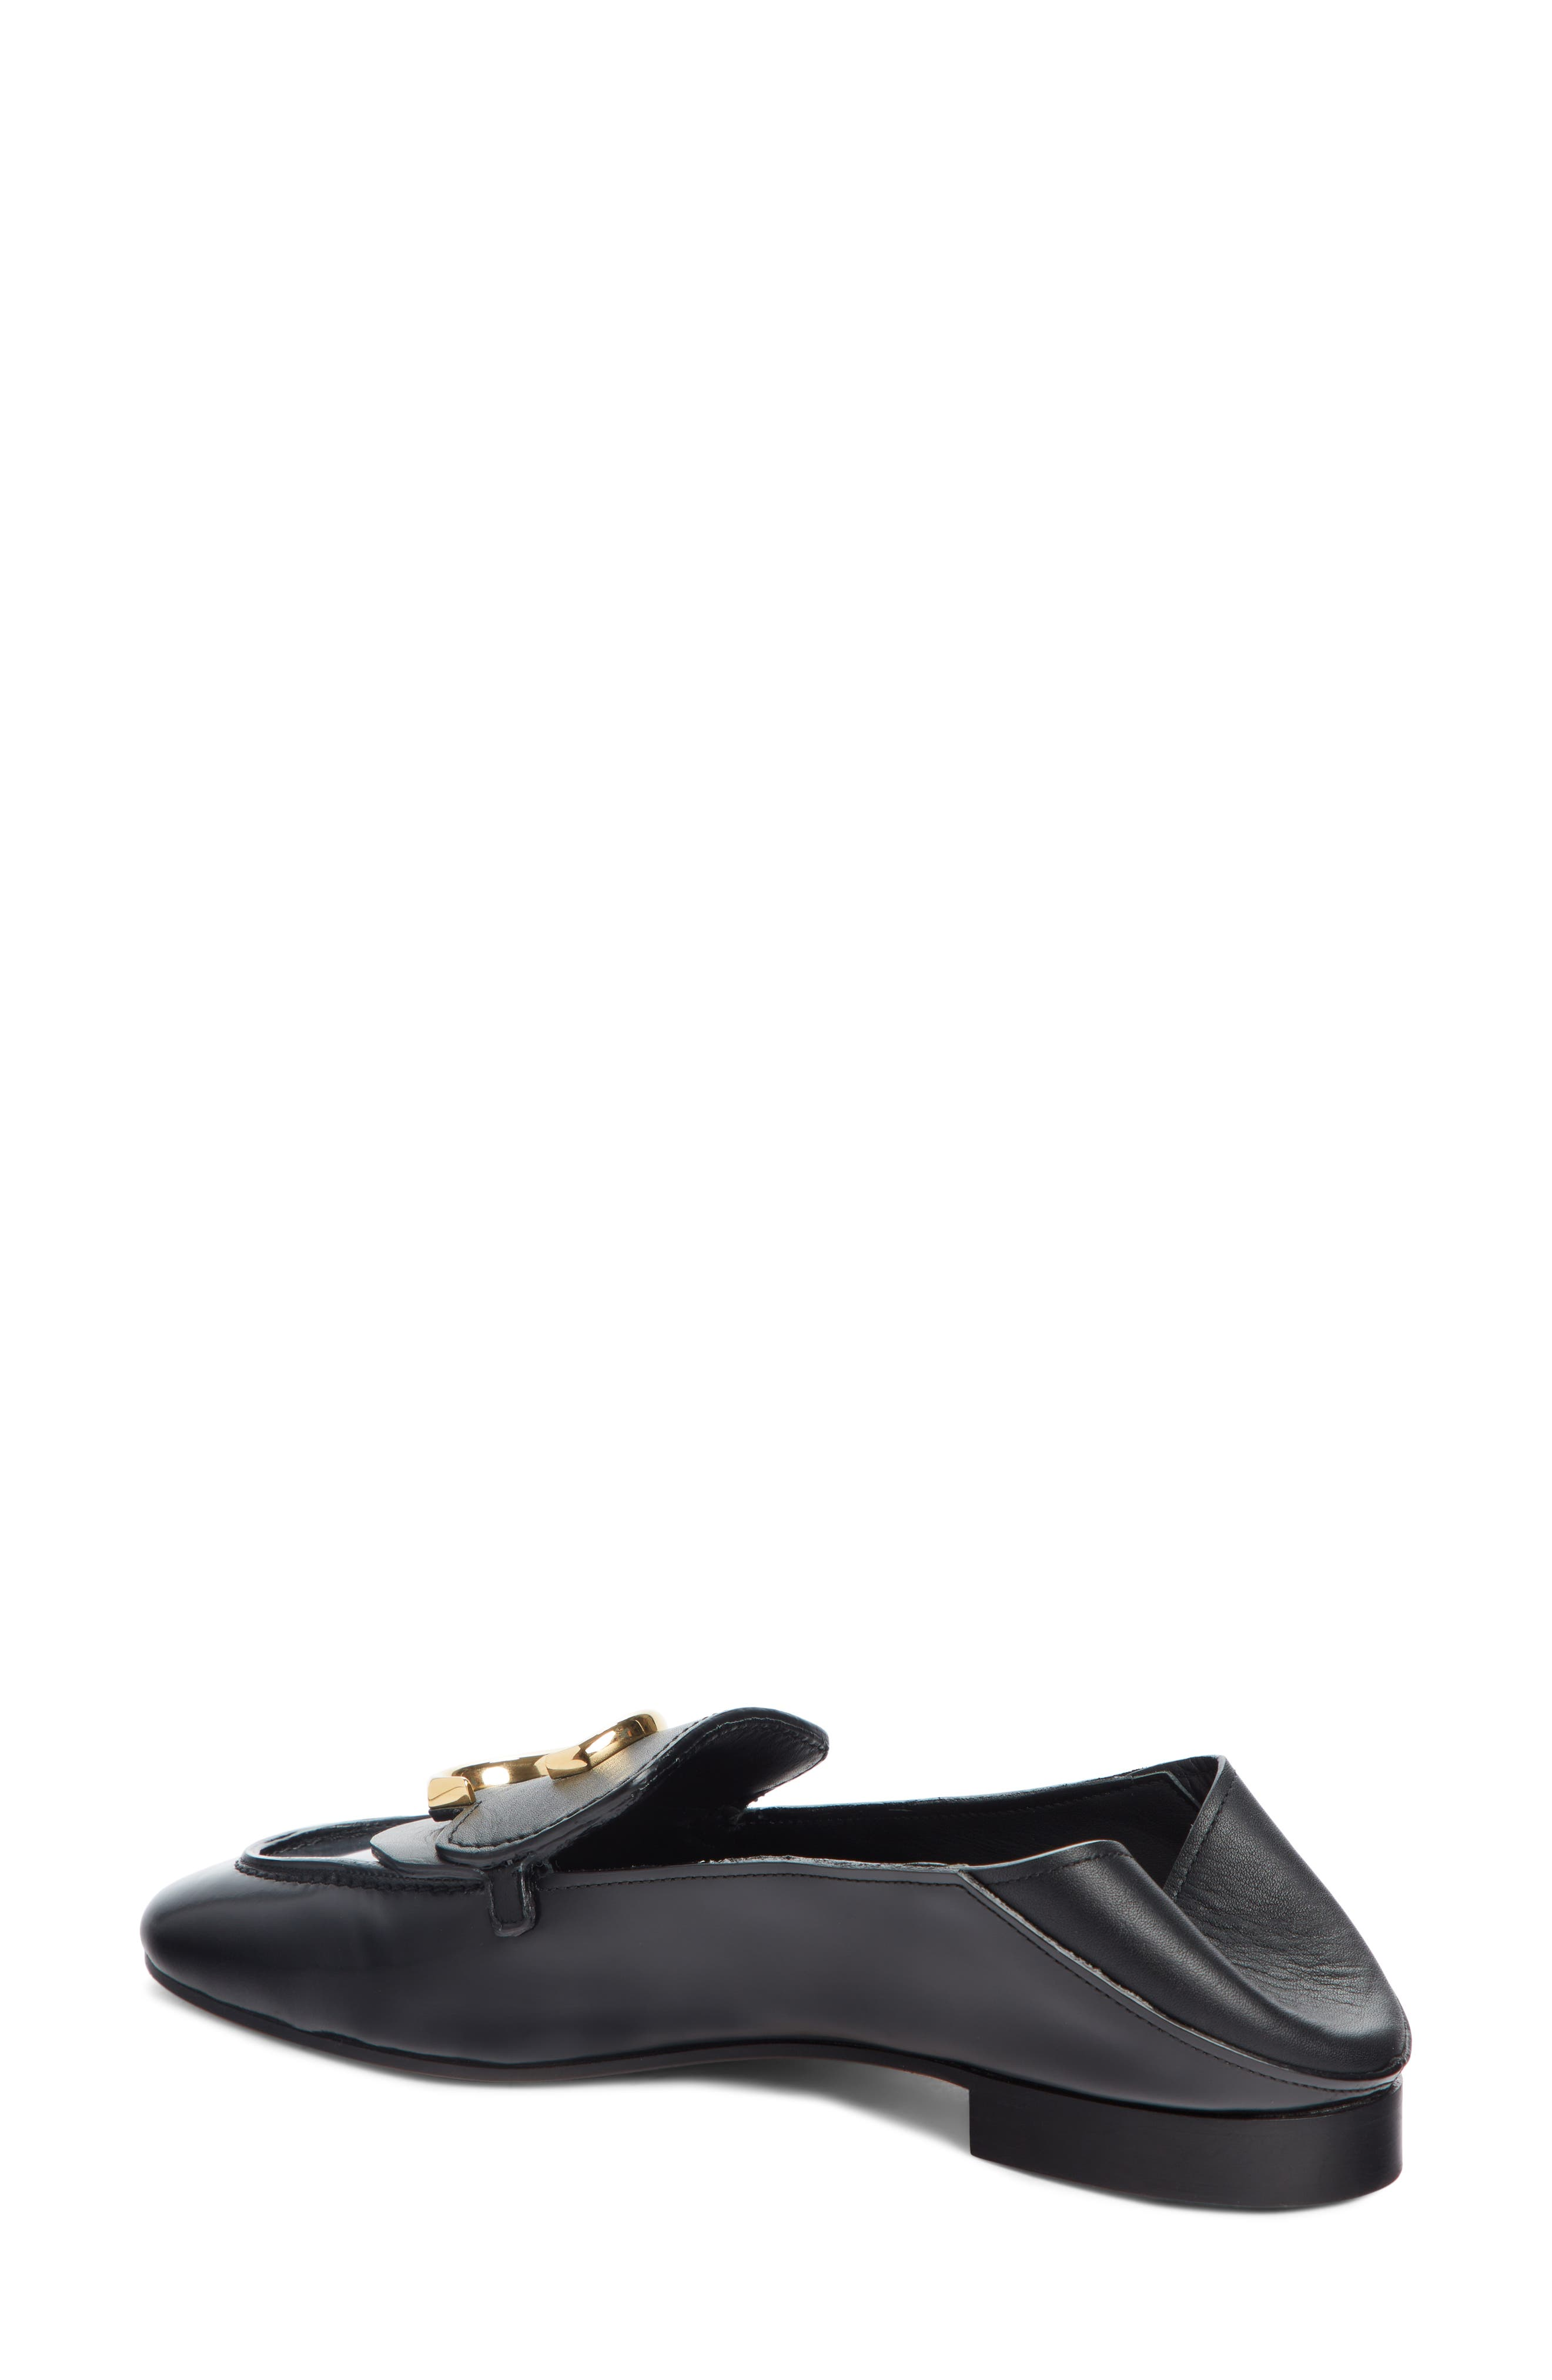 CHLOÉ, Story Convertible Loafer, Alternate thumbnail 2, color, BLACK LEATHER